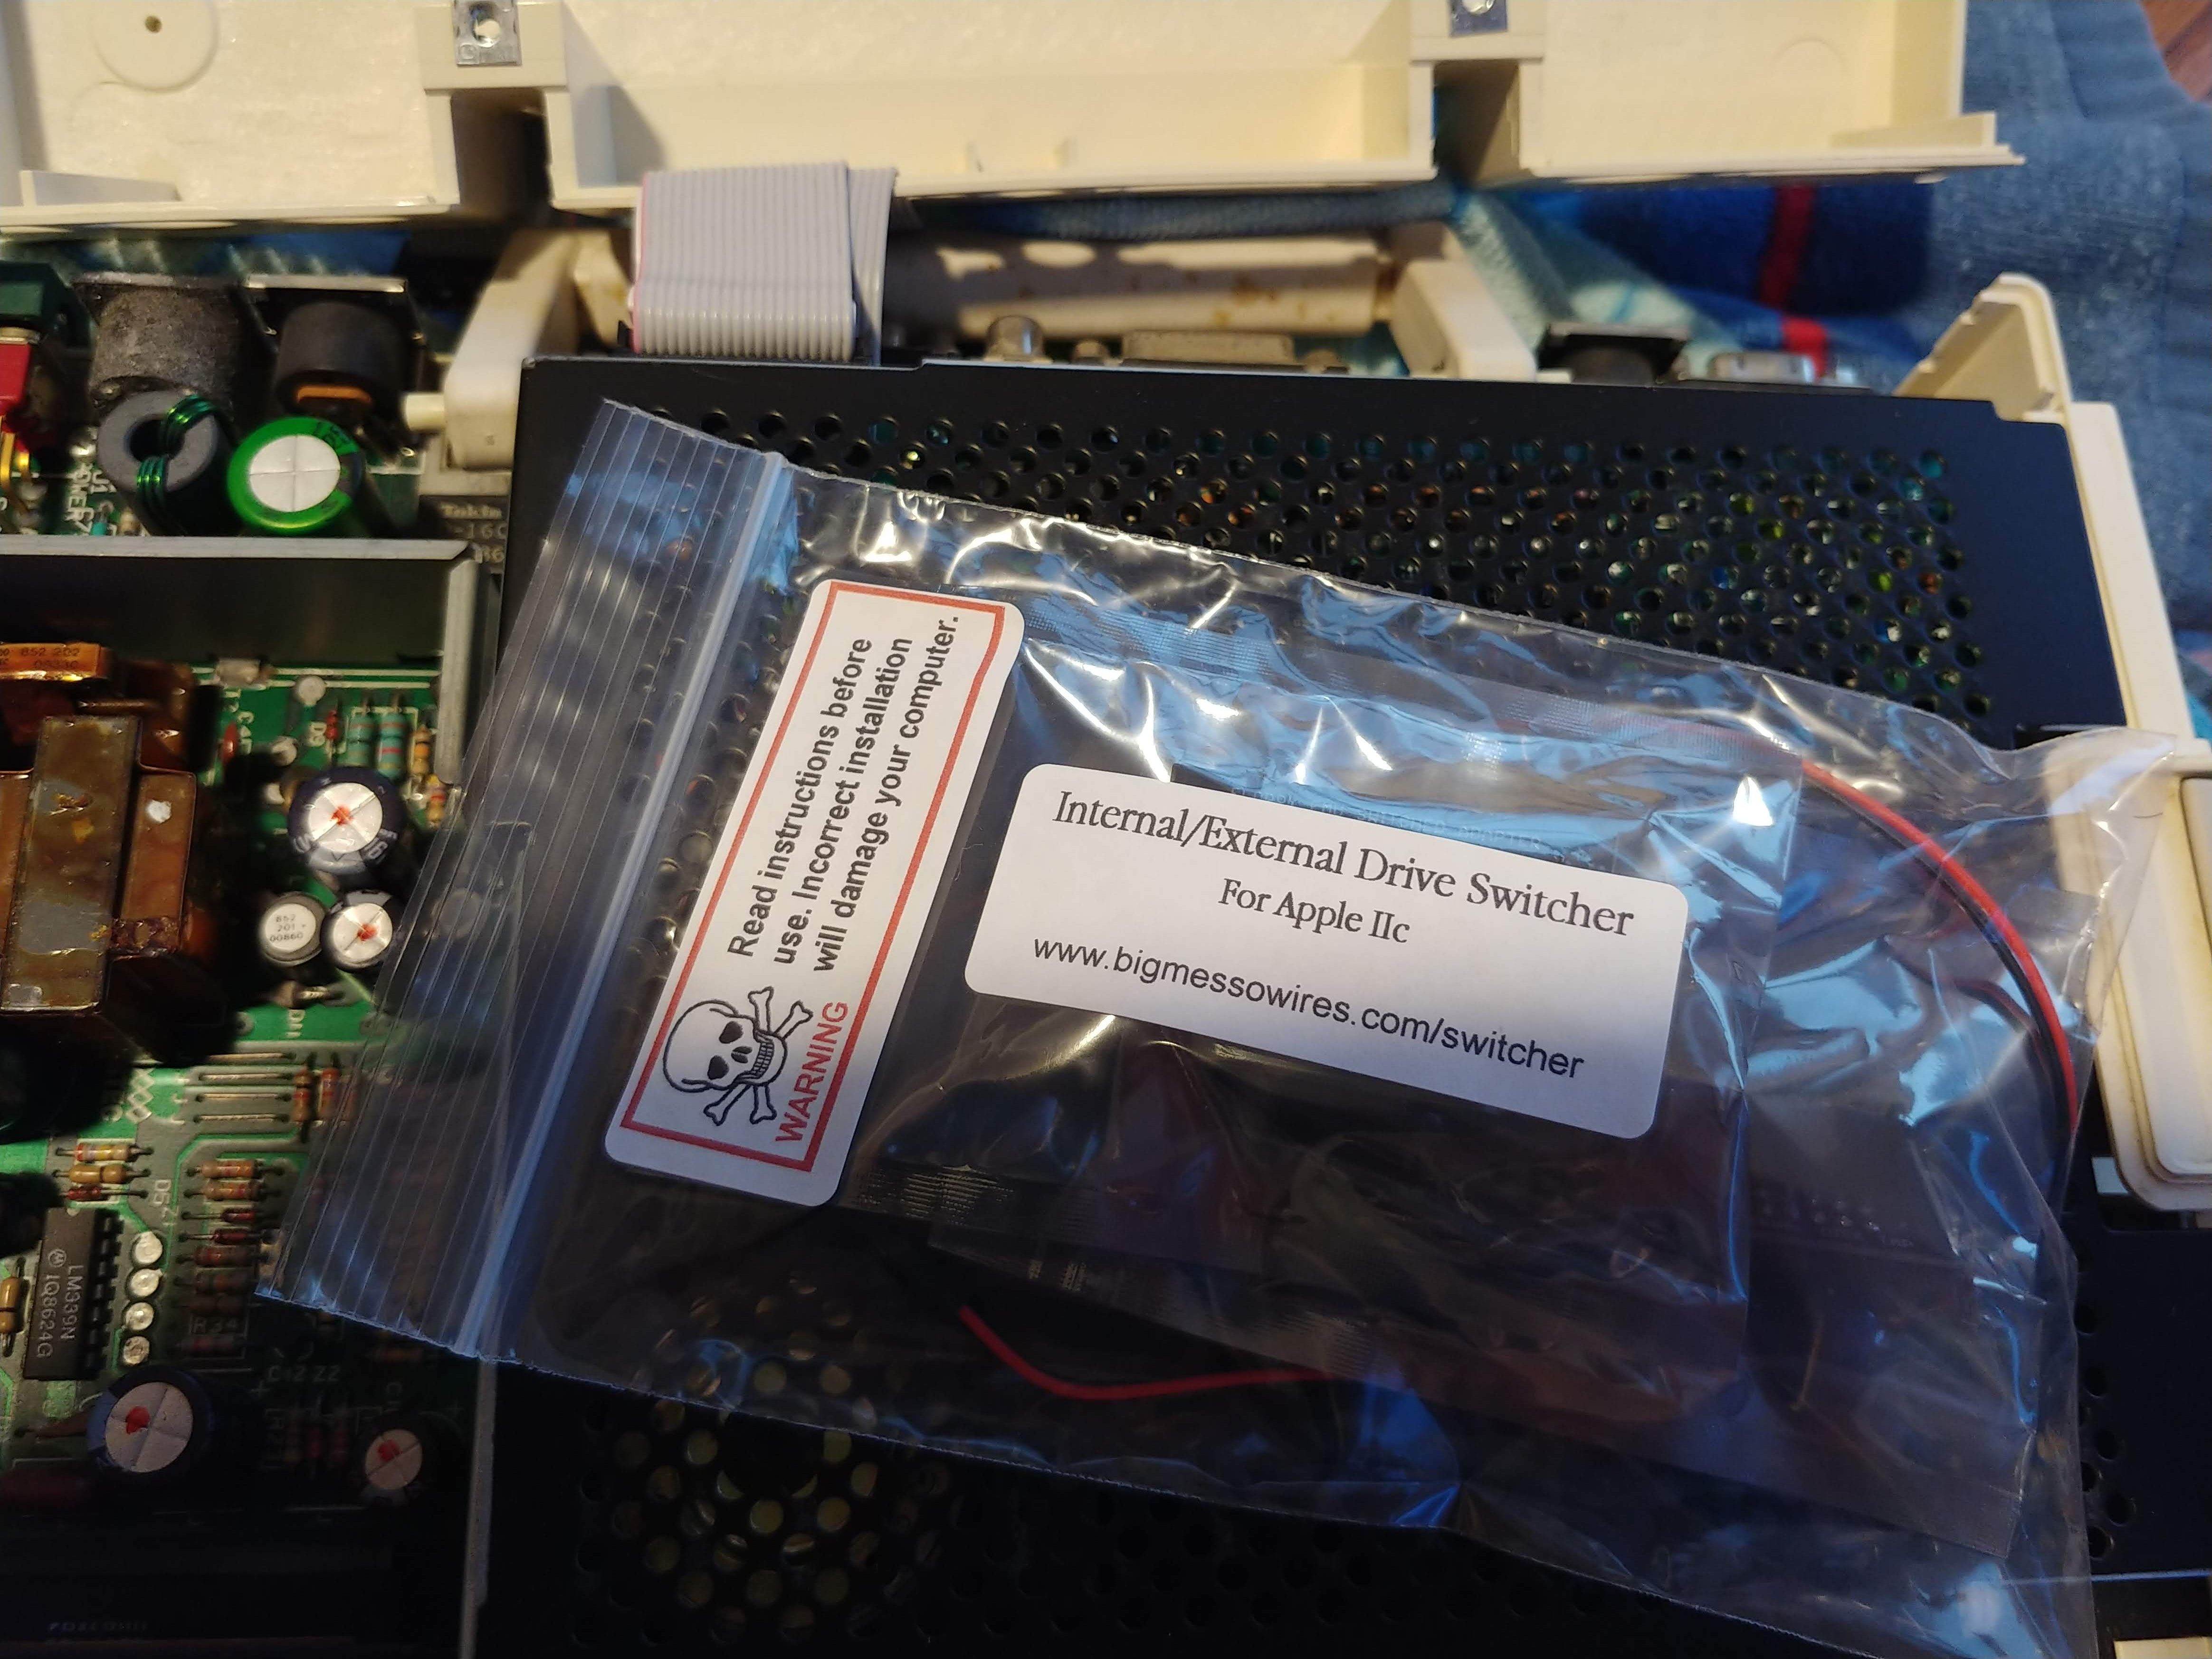 Internal/External Drive Switcher for Apple IIc package (a plastic baggie) on top of the IIc's internal floppy drive.